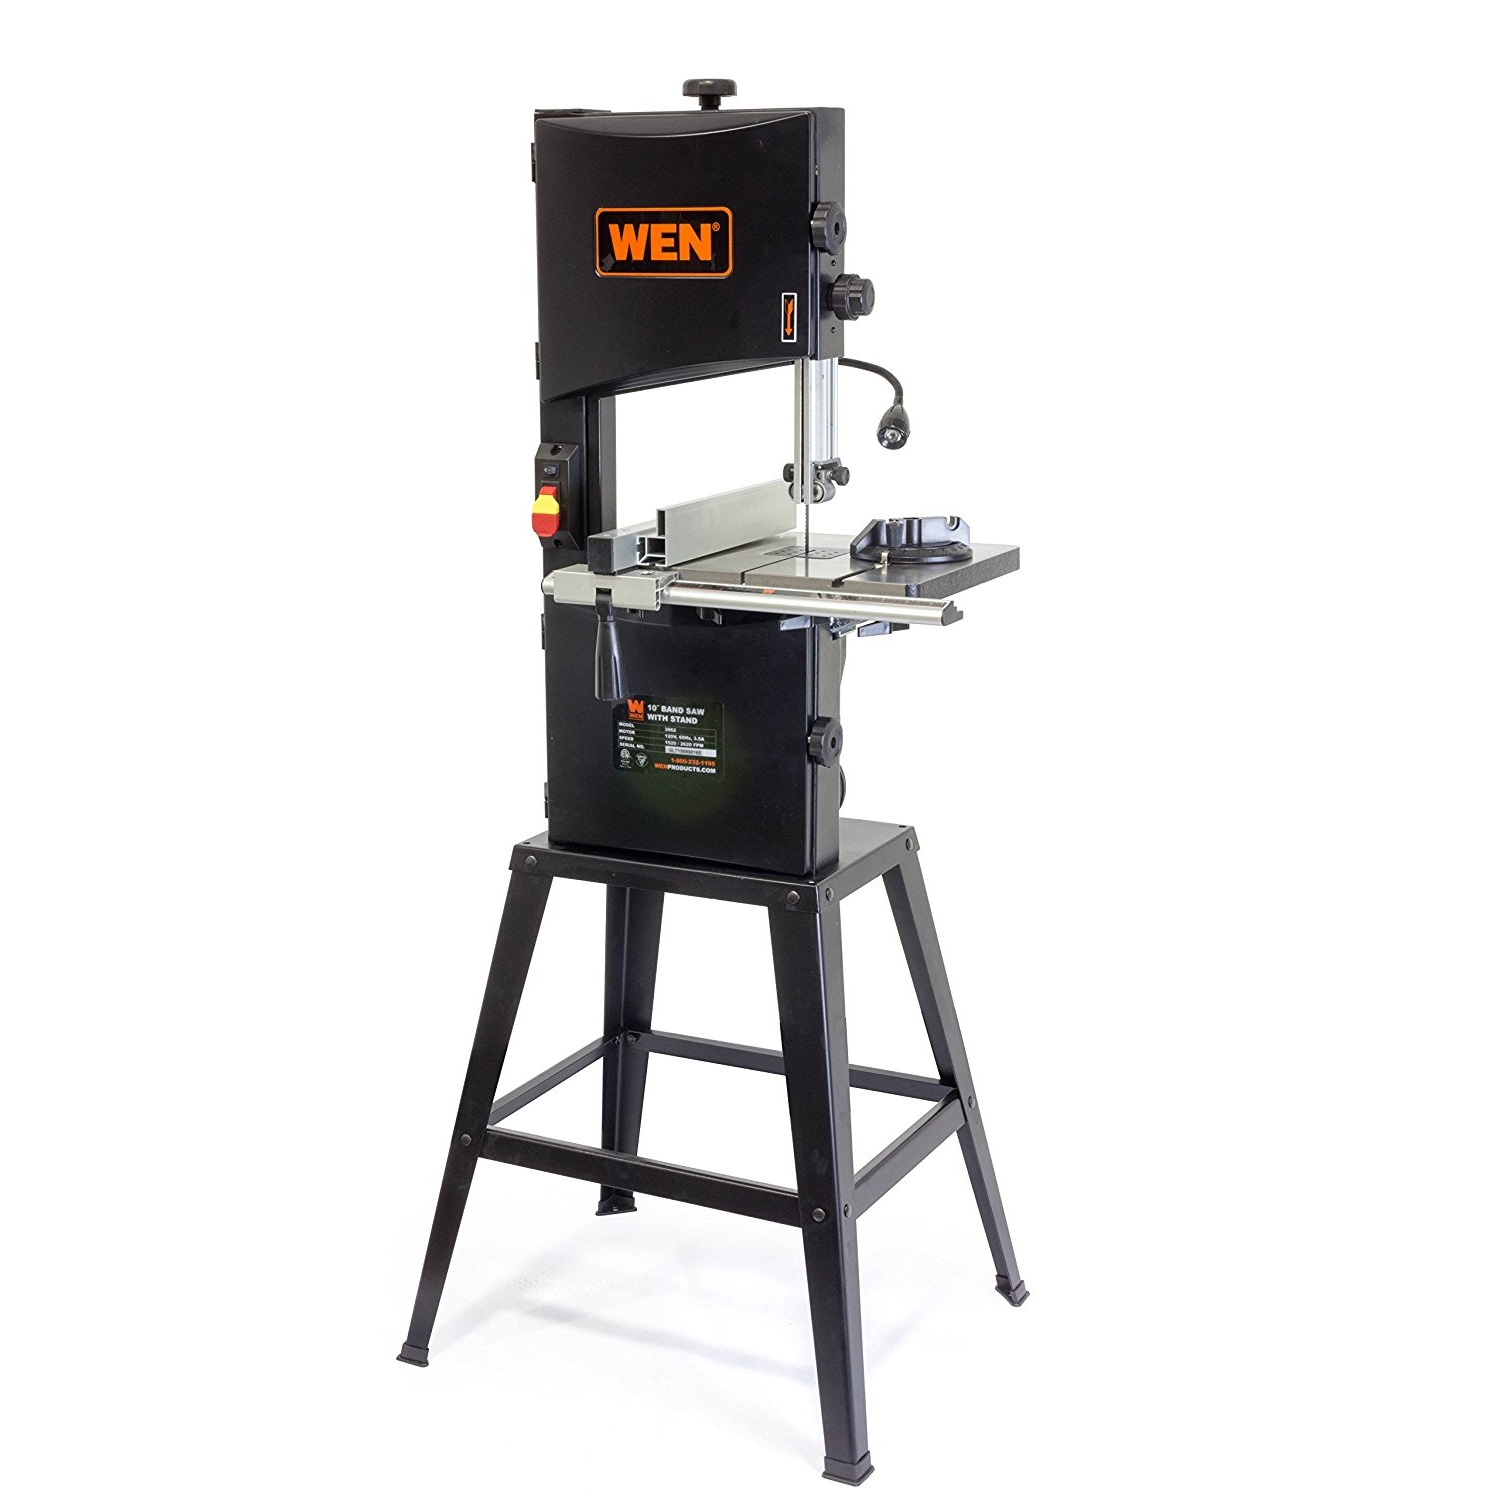 WEN Two-Speed Band Saw